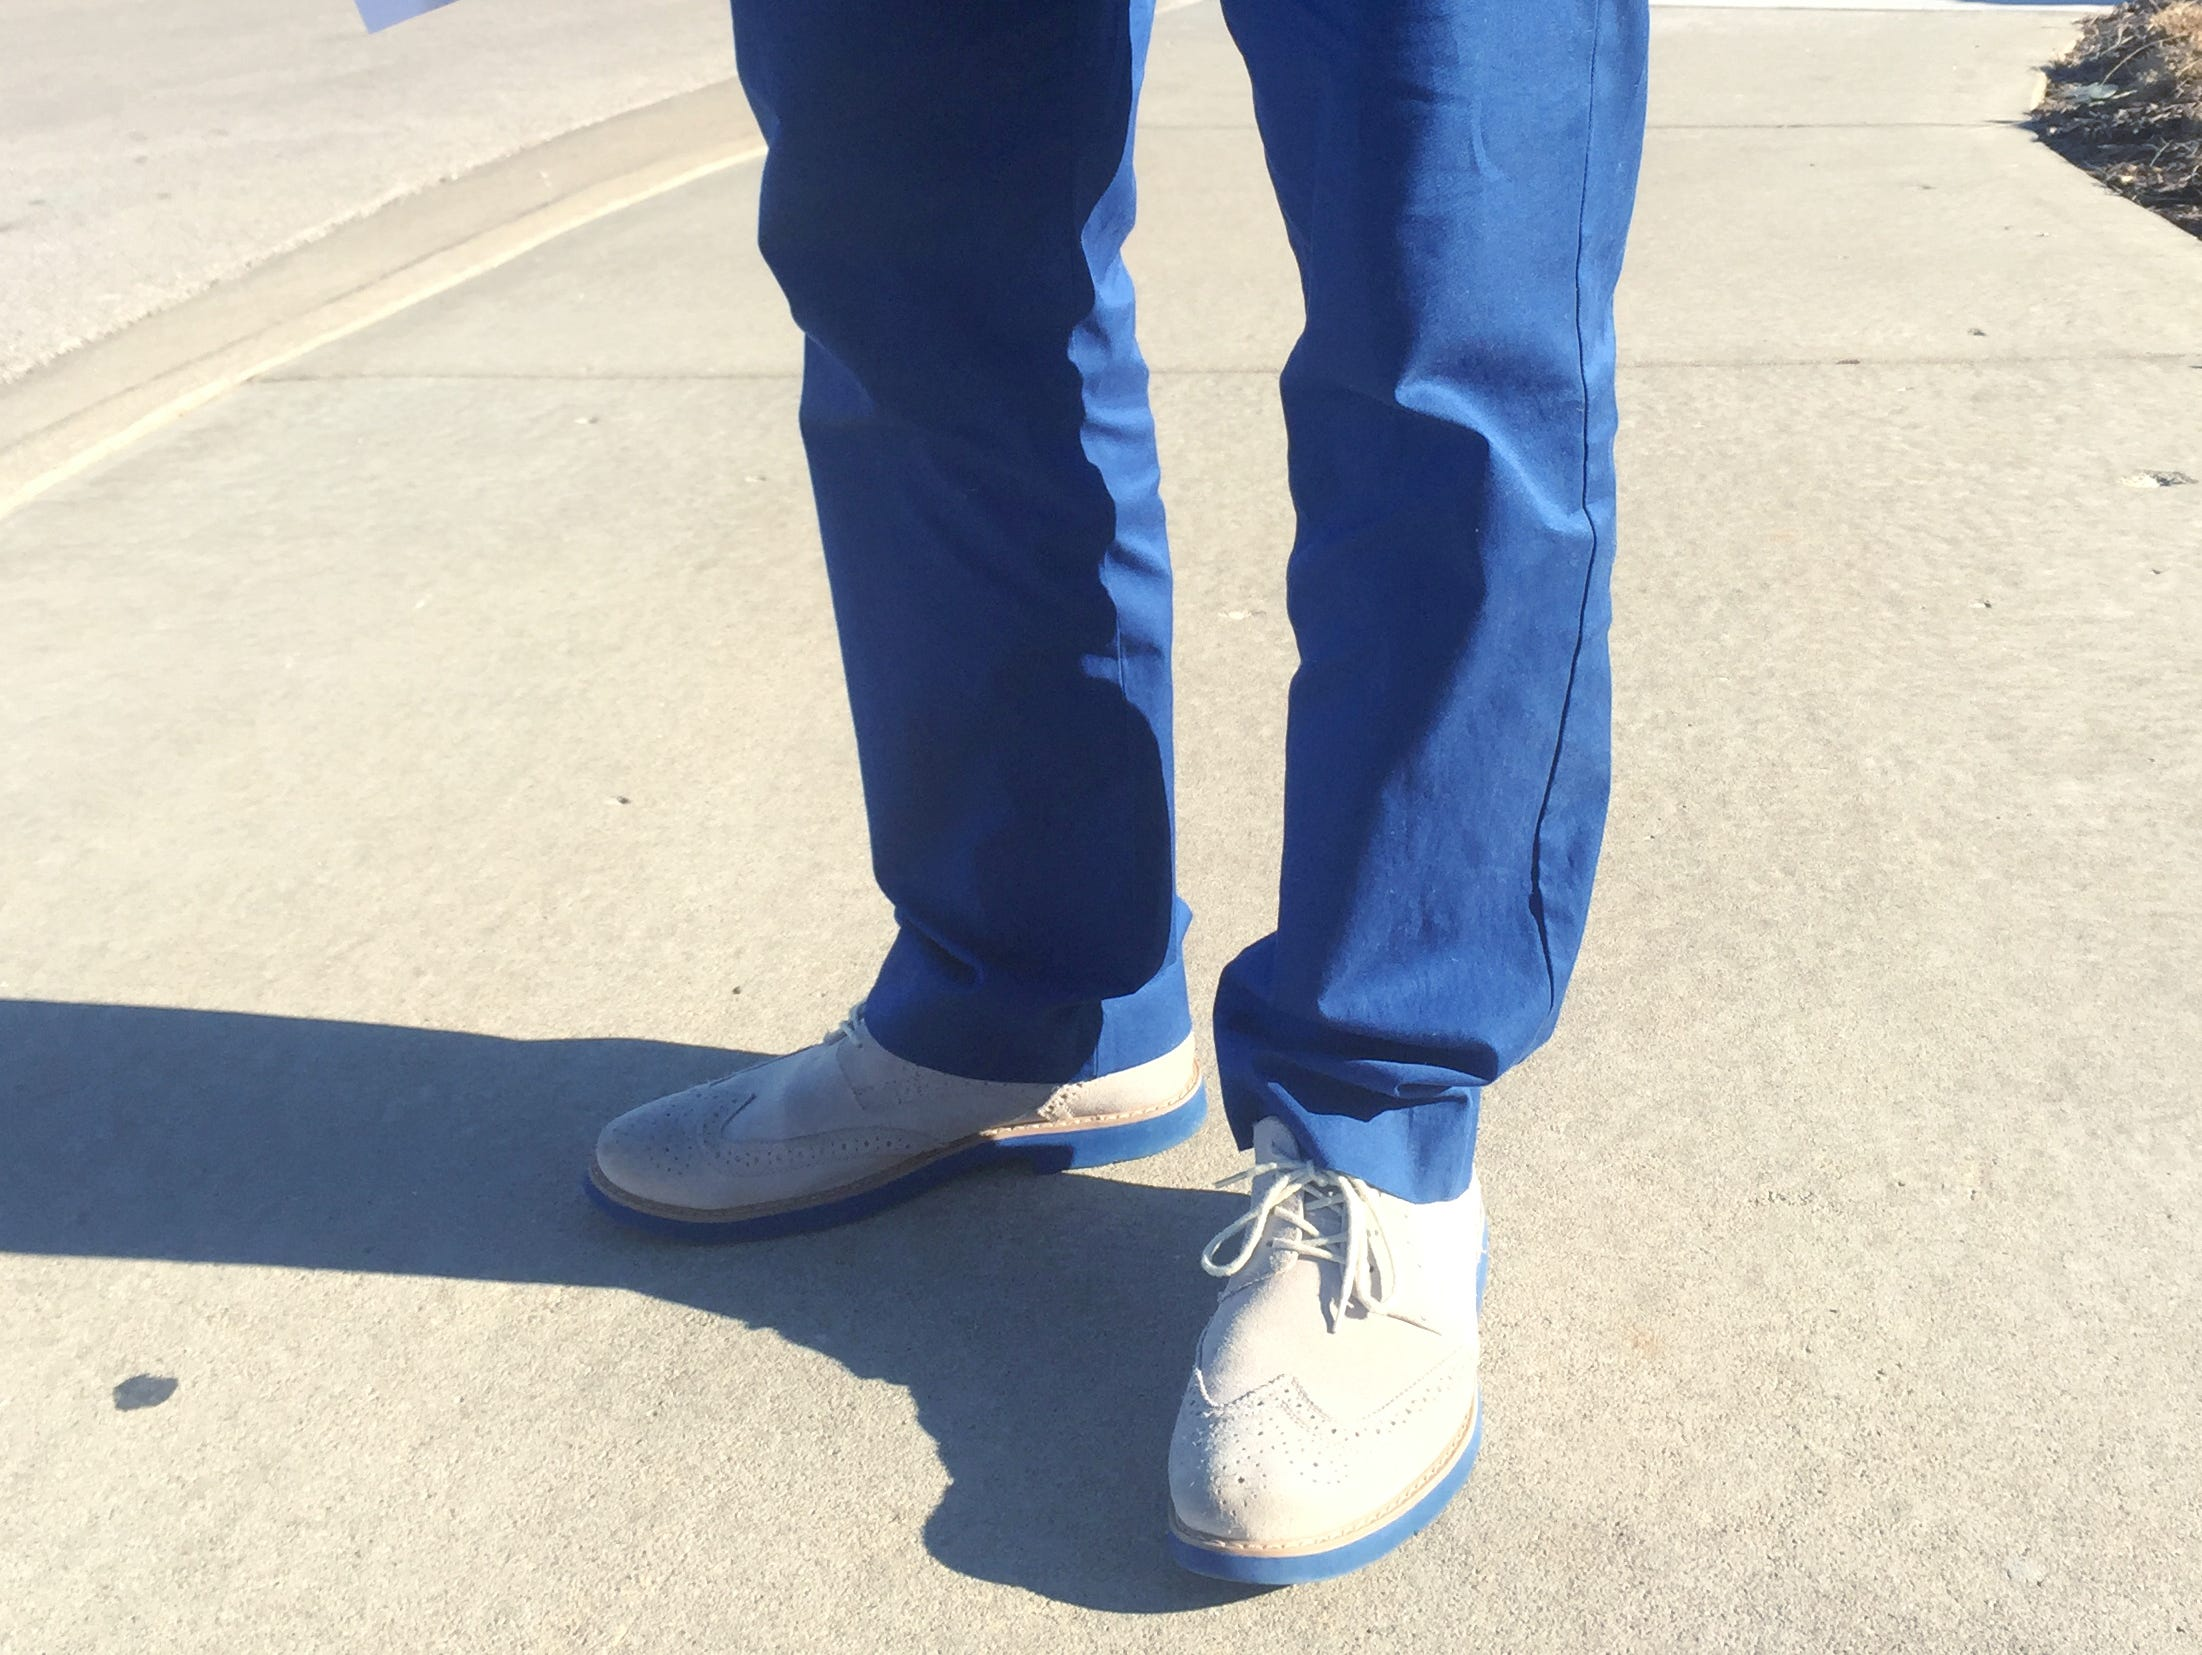 Bolivar boys basketball coach Robby Hoegh has been known to show is Liberator spirit by donning bright blue slacks.